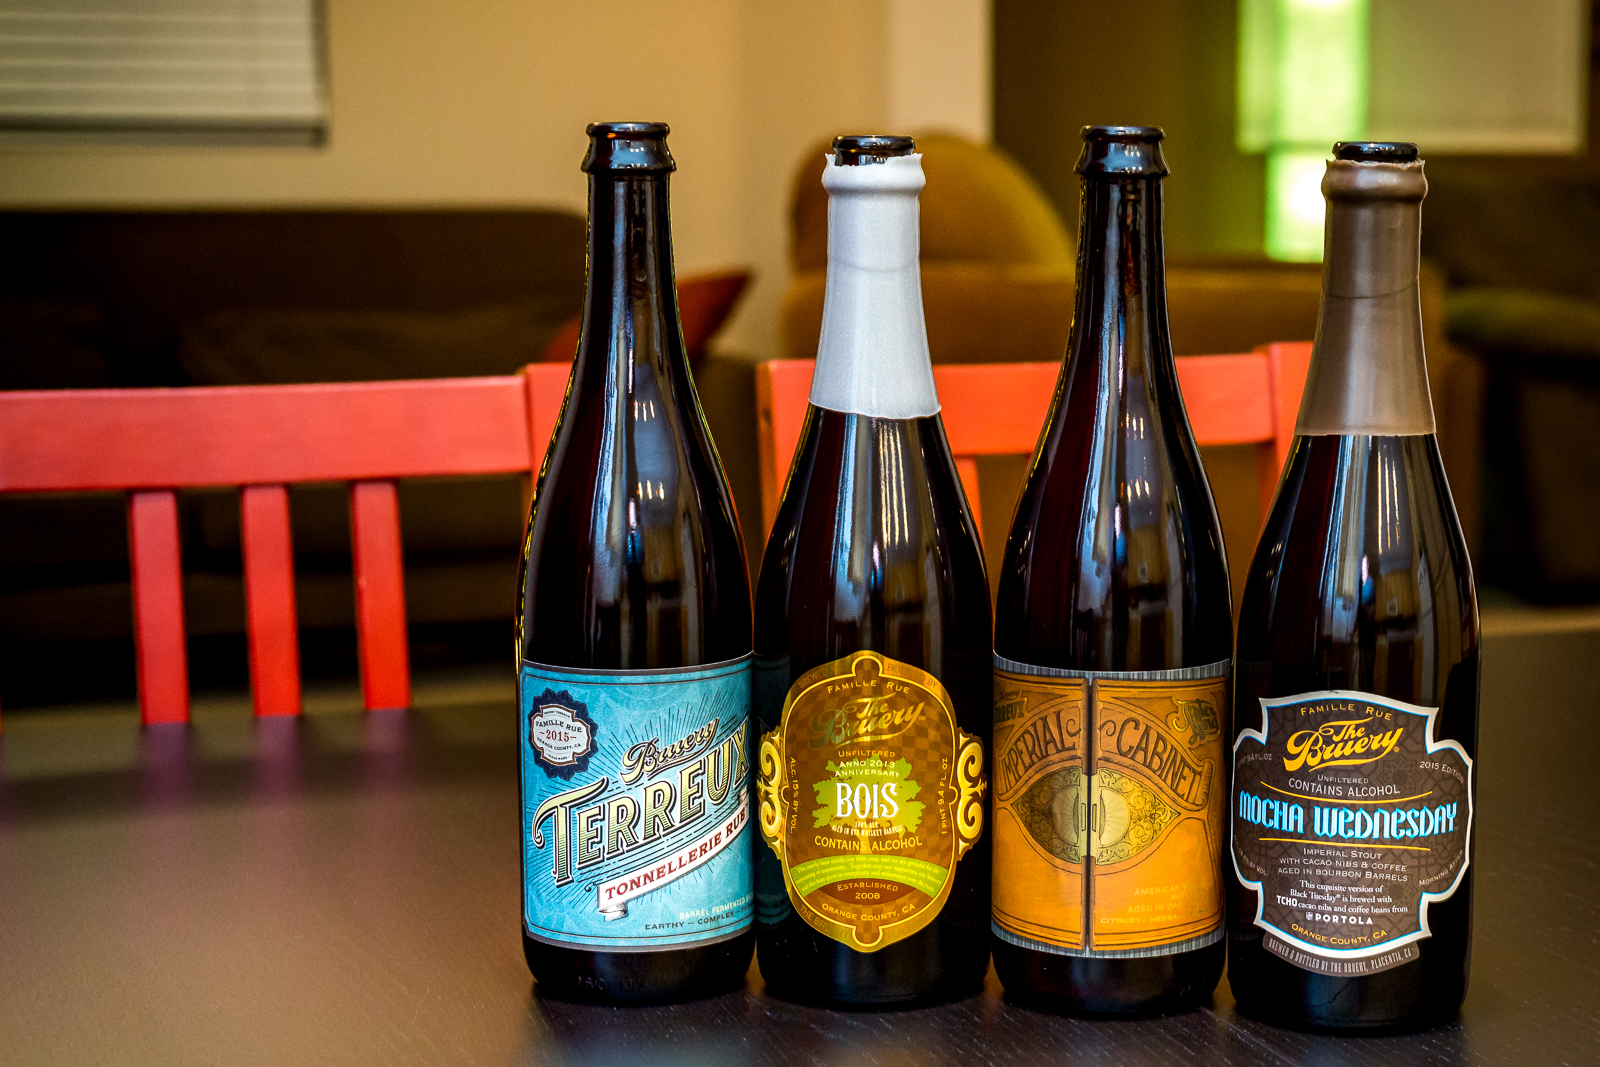 Beers from The Bruery and Bruery Terreux